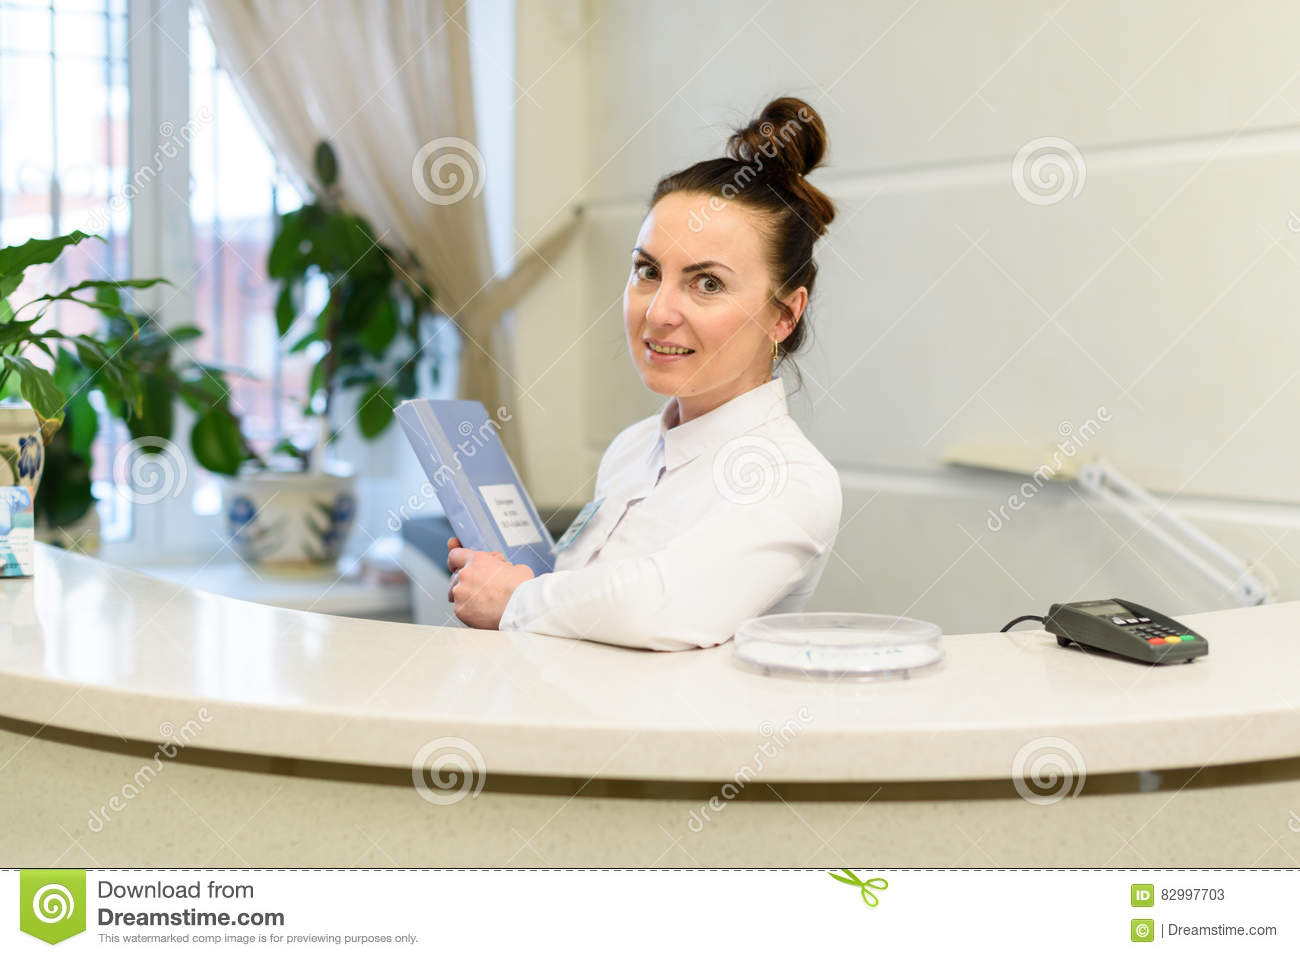 Woman receptionist in medical coat stands at reception desk